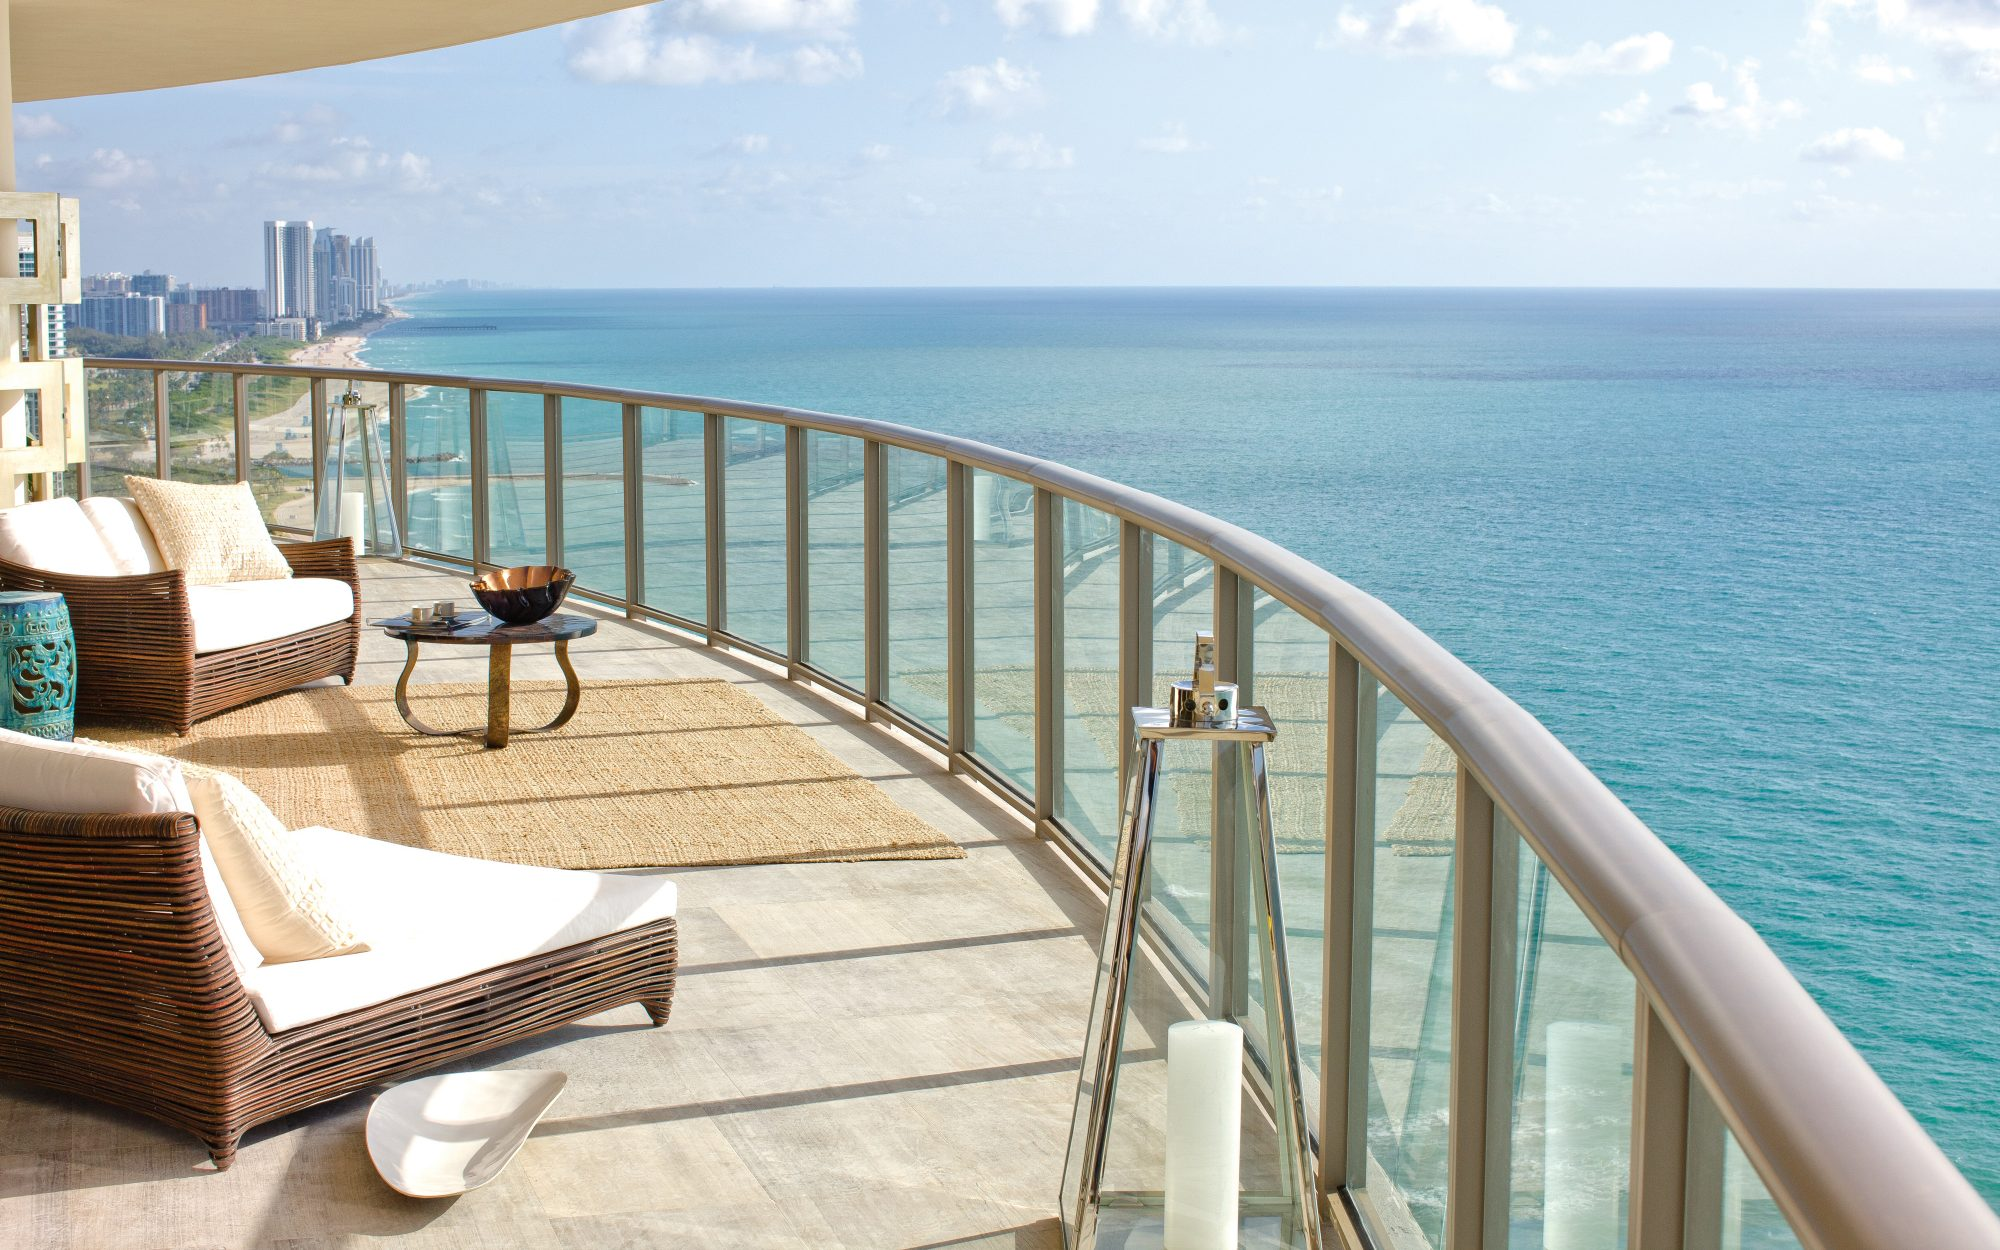 Best Resorts in the Continental U.S.: St. Regis Bal Harbour Resort & Residences Miami, Florida